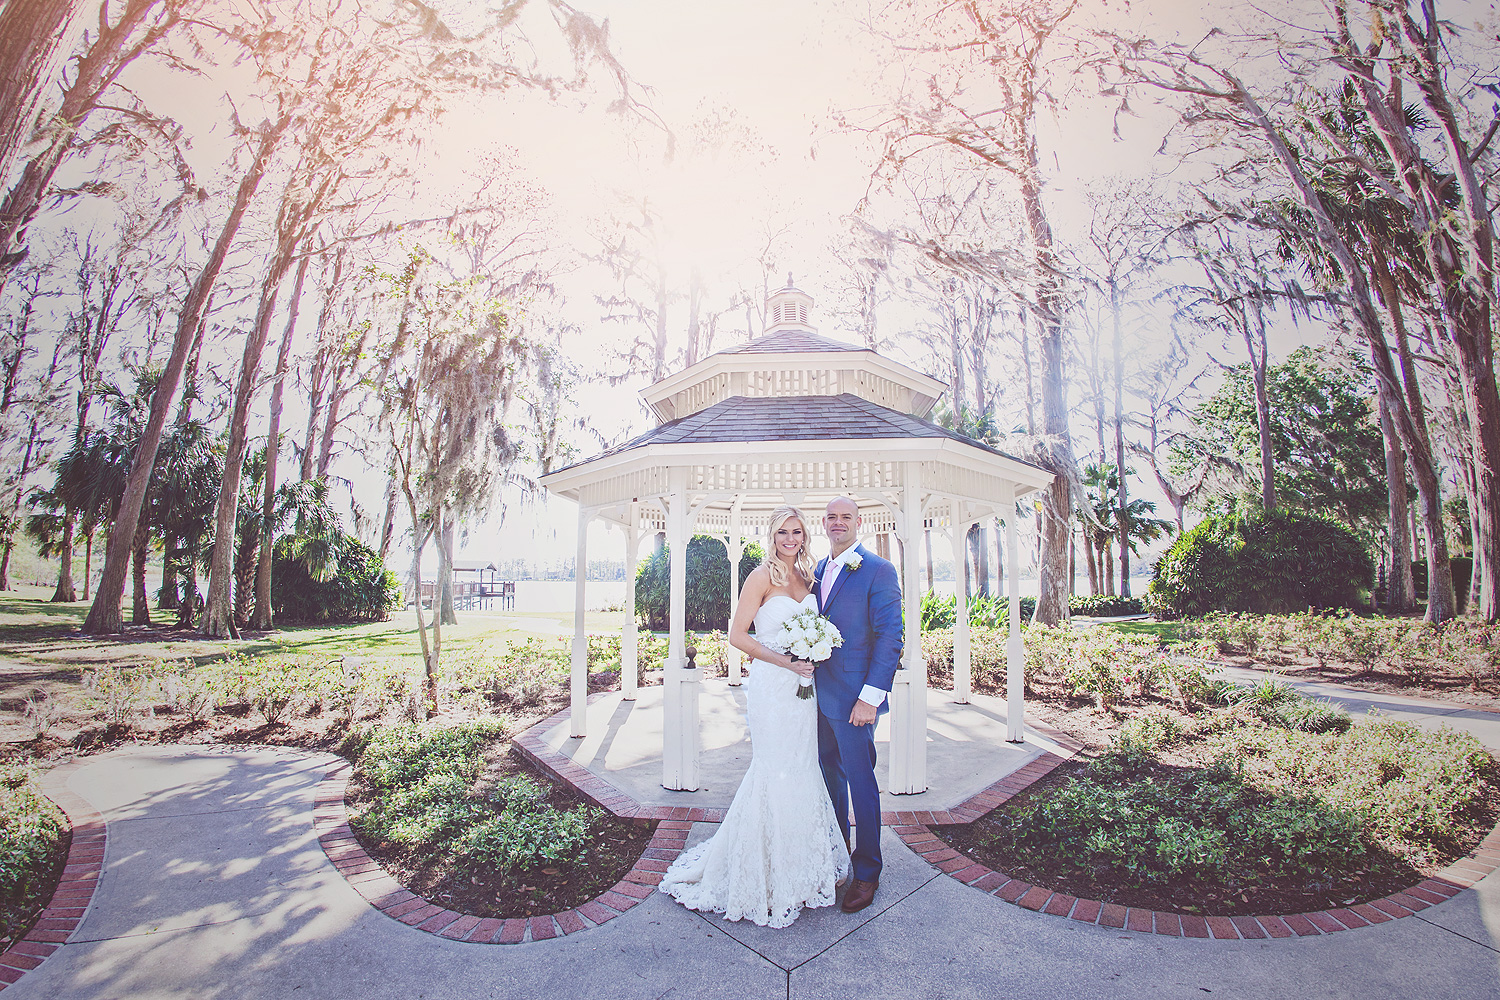 CYPRESS GROVE PARK GAZEBO